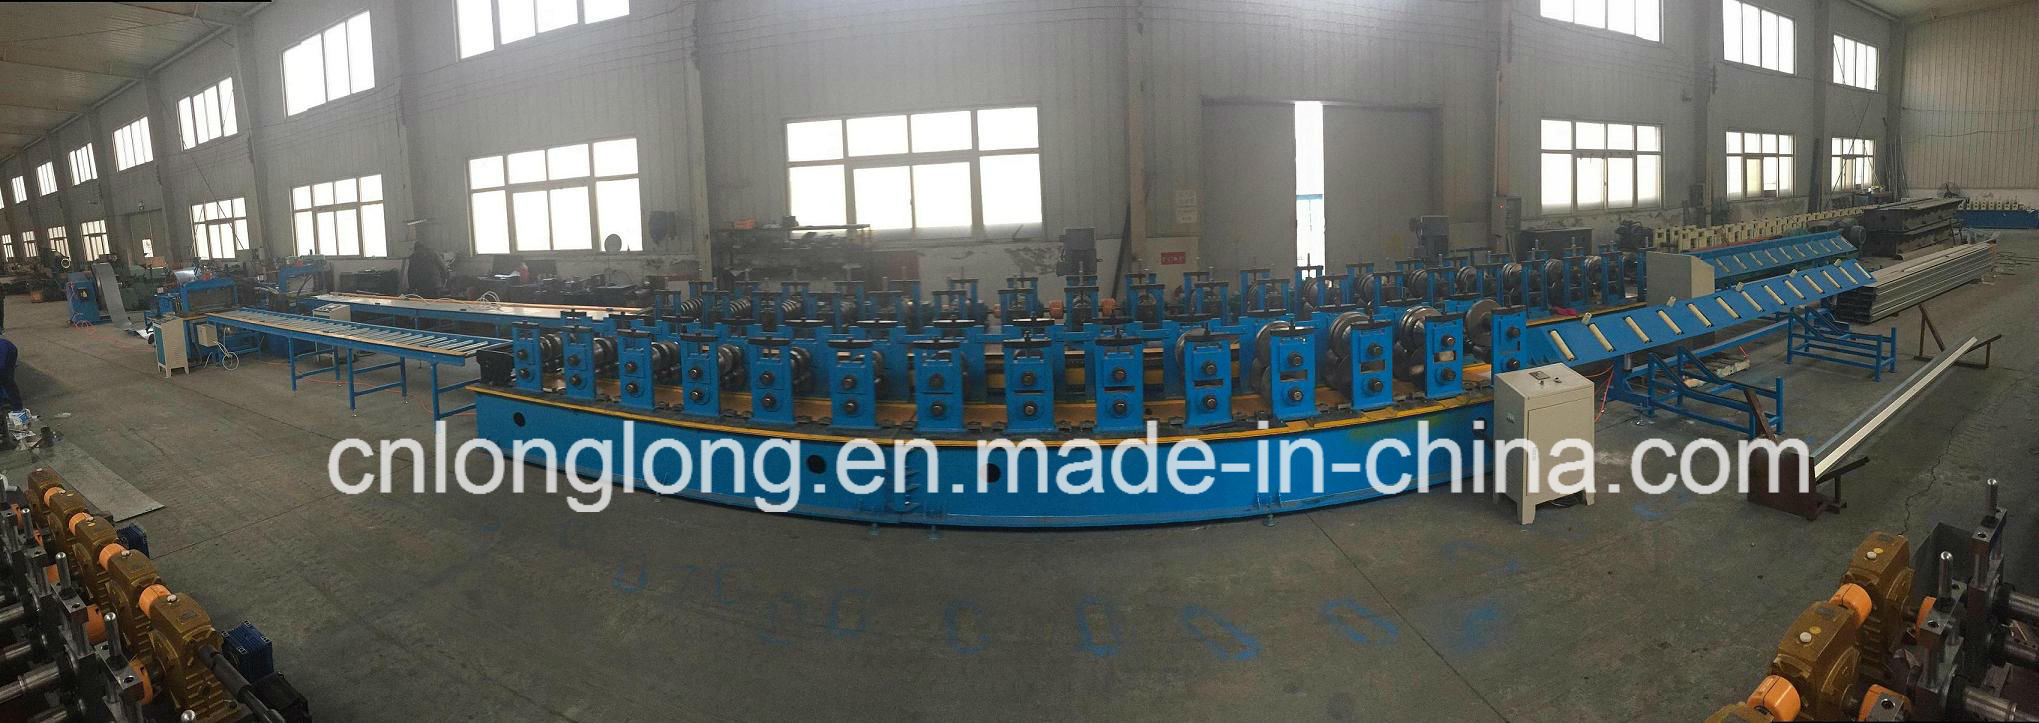 High Accuracy and High Speed Greenhouse Gutter Roll Forming Machine for Long Life Warranty